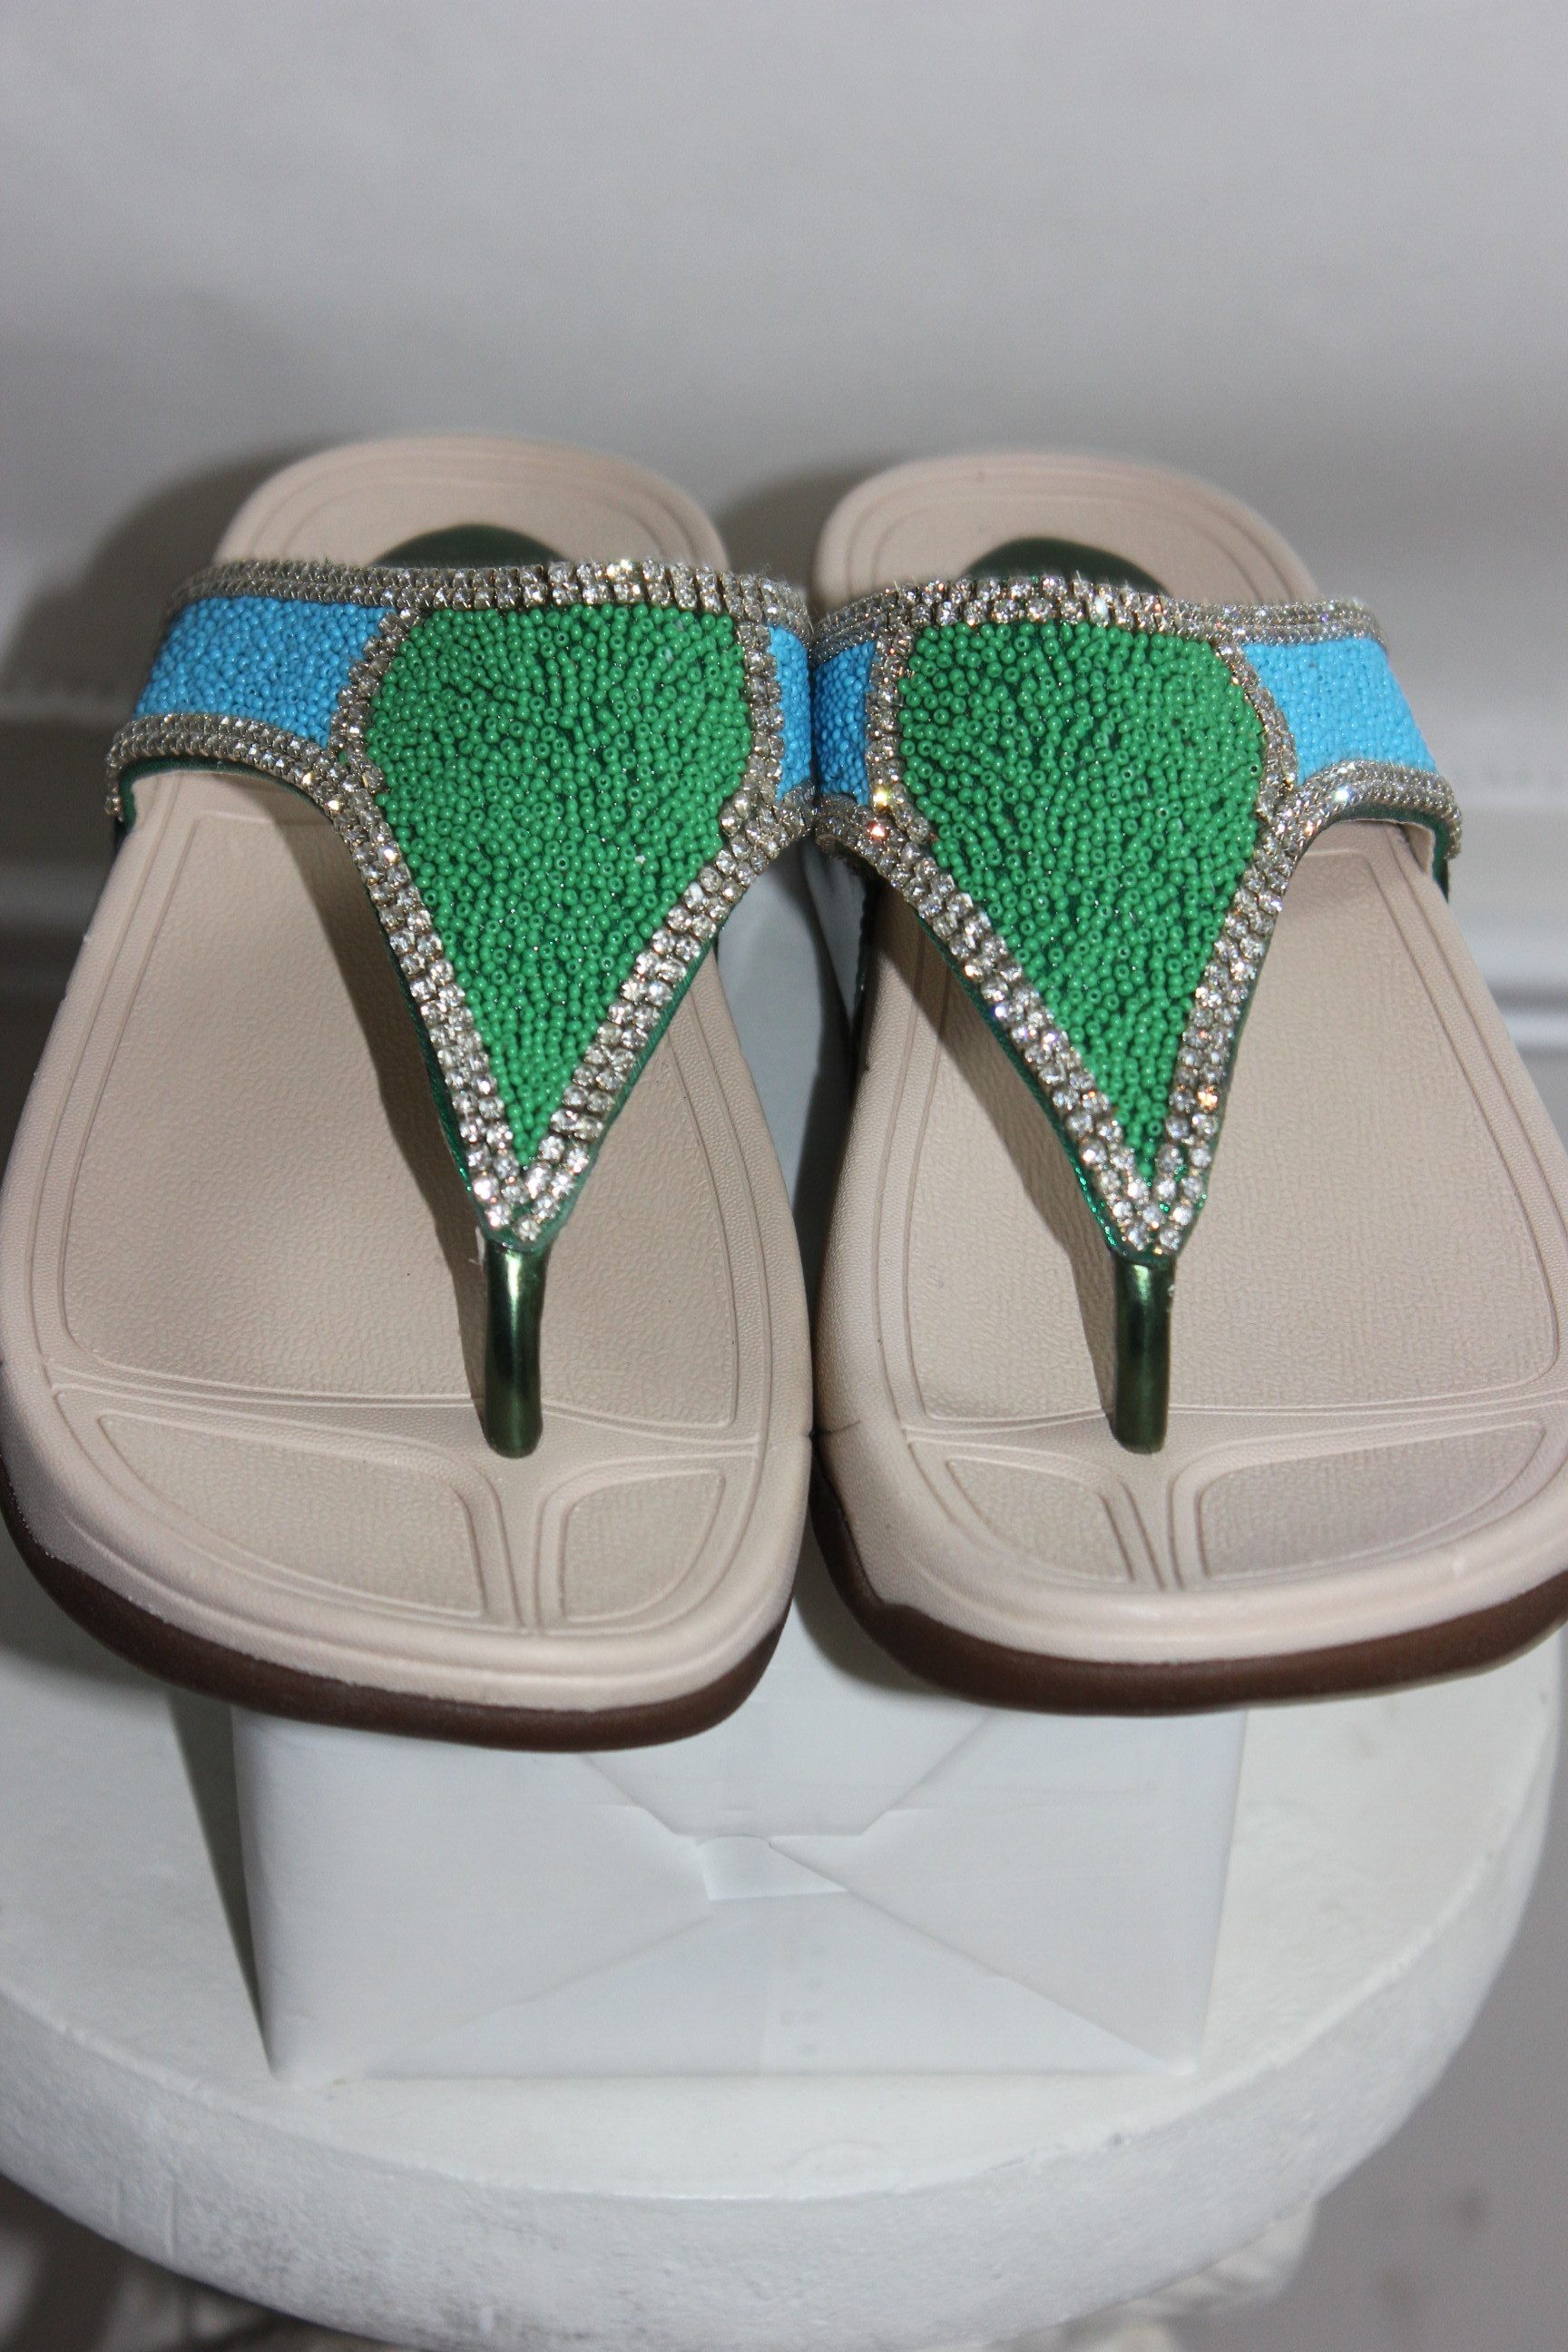 New Cushioned Multi Flip Flop Sandal Slippers Shoes Size 41